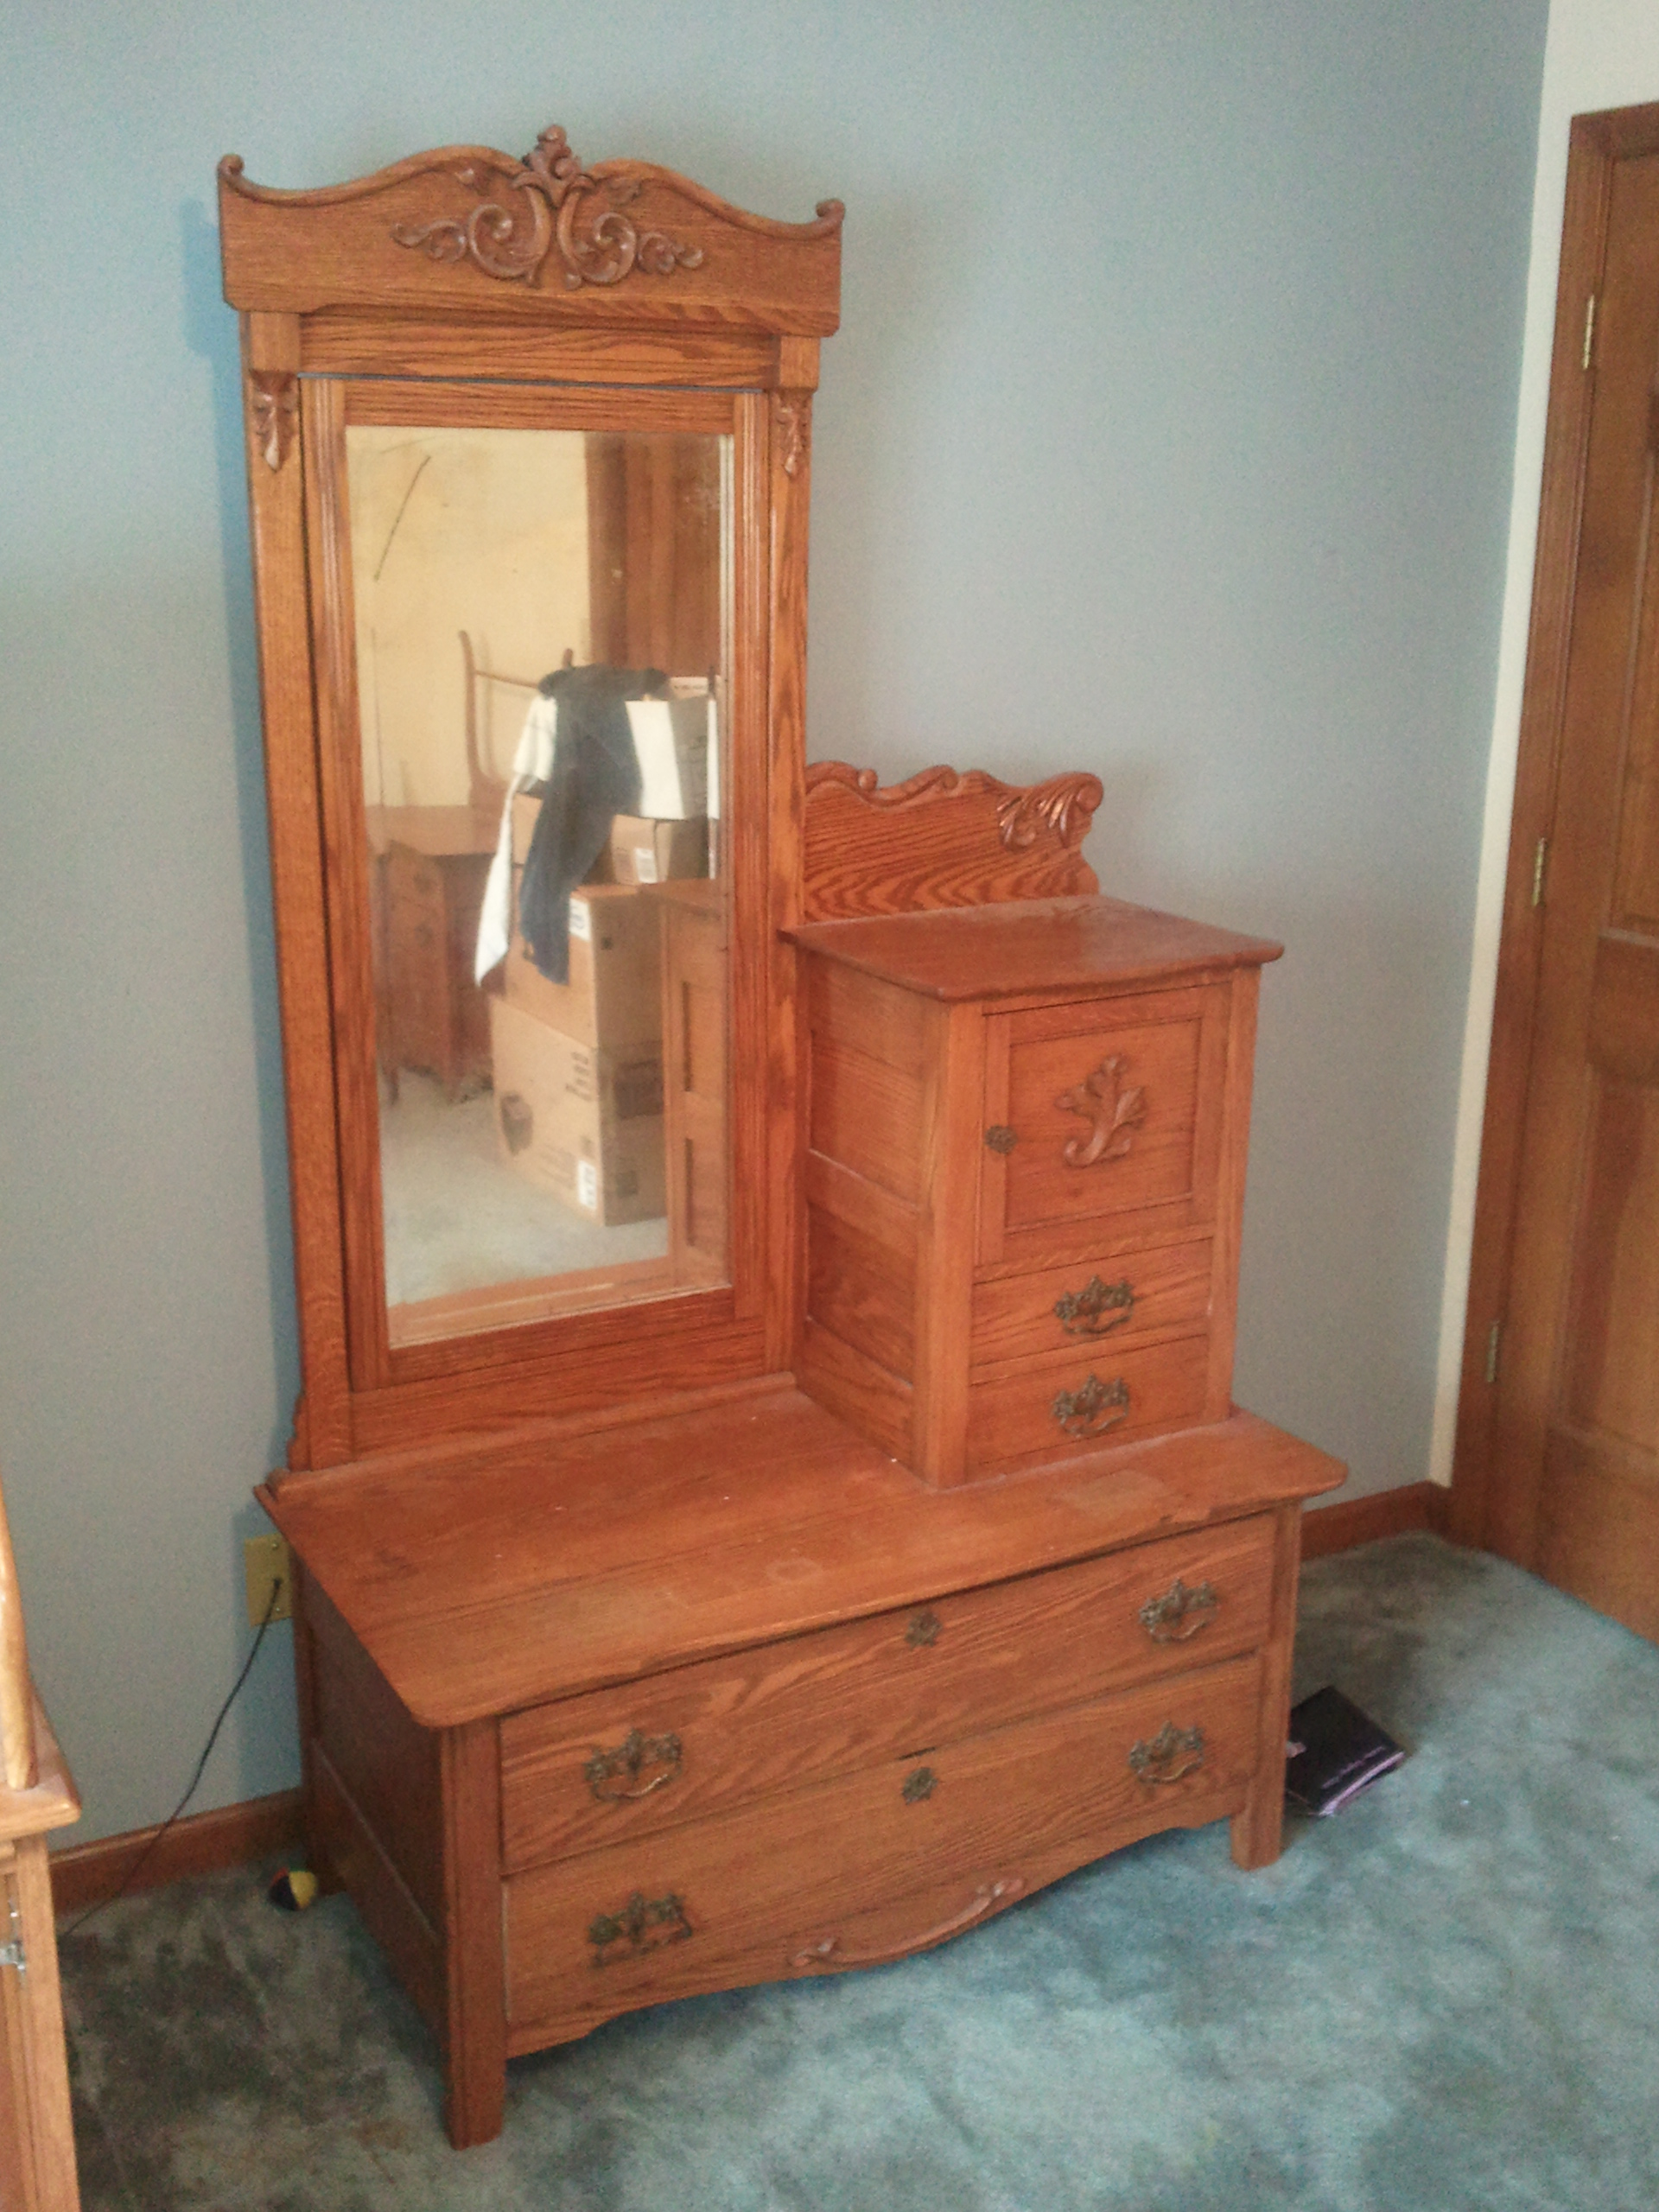 3 Piece Antique Bedroom Set For Sale Classifieds